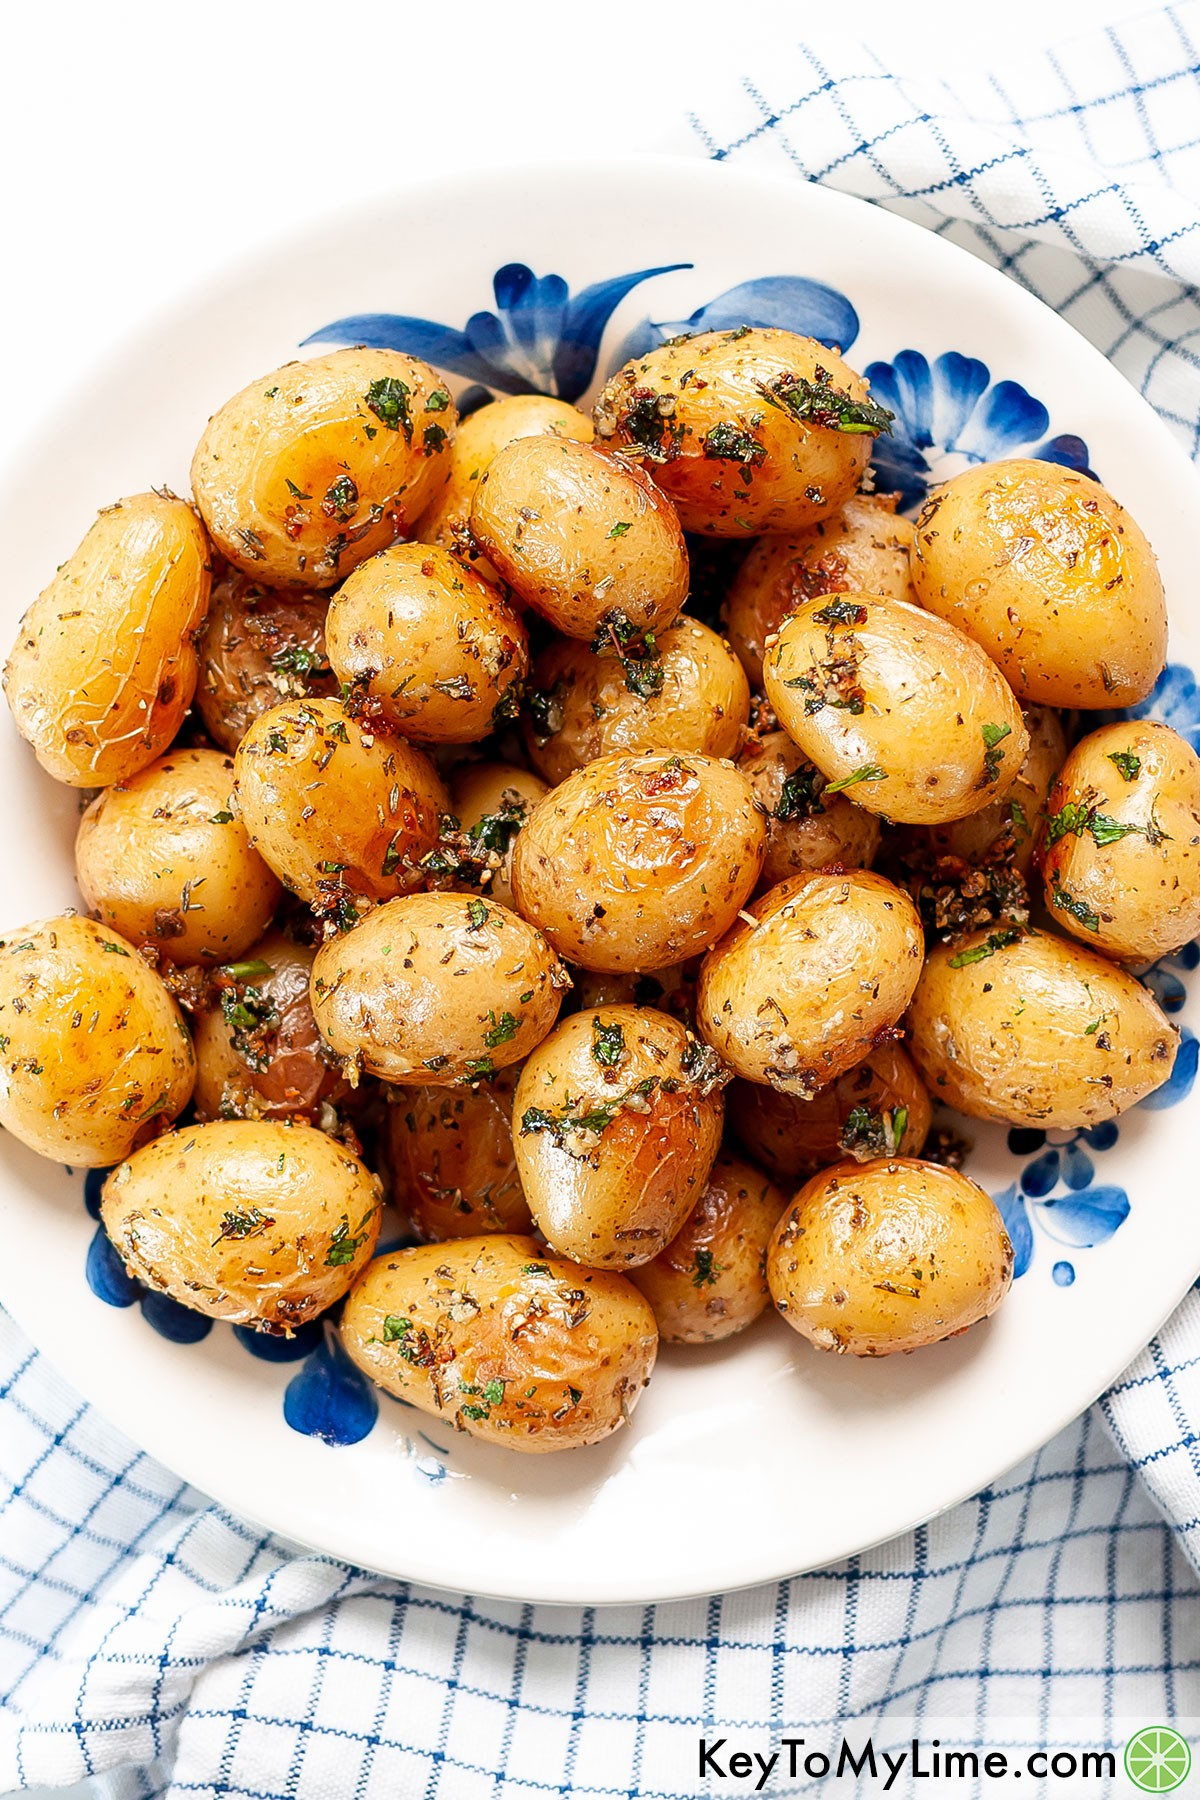 A blue and white bowl filled with roasted baby potatoes.